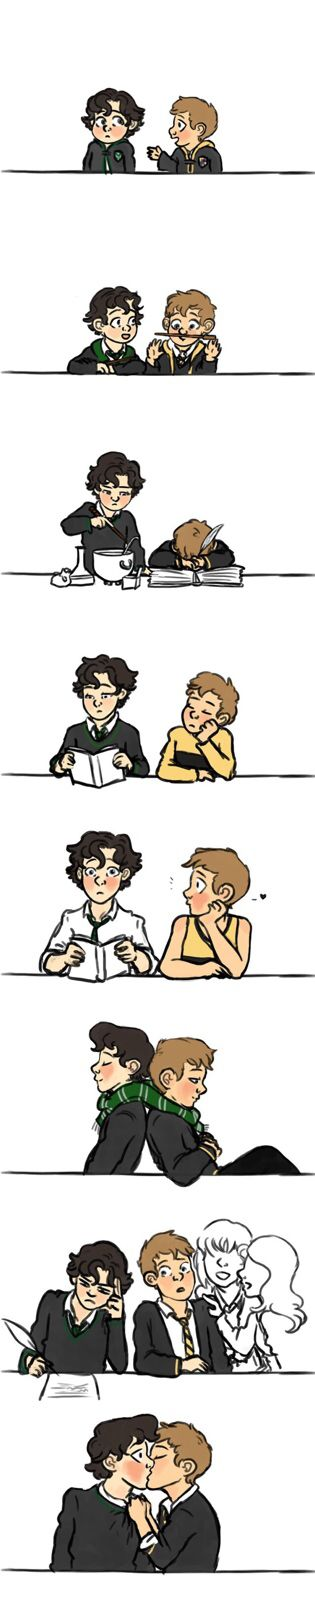 Potterlock!AU but john is obviously in GRYFFINDOR. And sherlock is obviously in ravenclaw. Moriarty, Irene, Mycroft= slytherin. Greg and Molly= hufflepuff. I'm think Mary would be either slytherin or gryffindor...